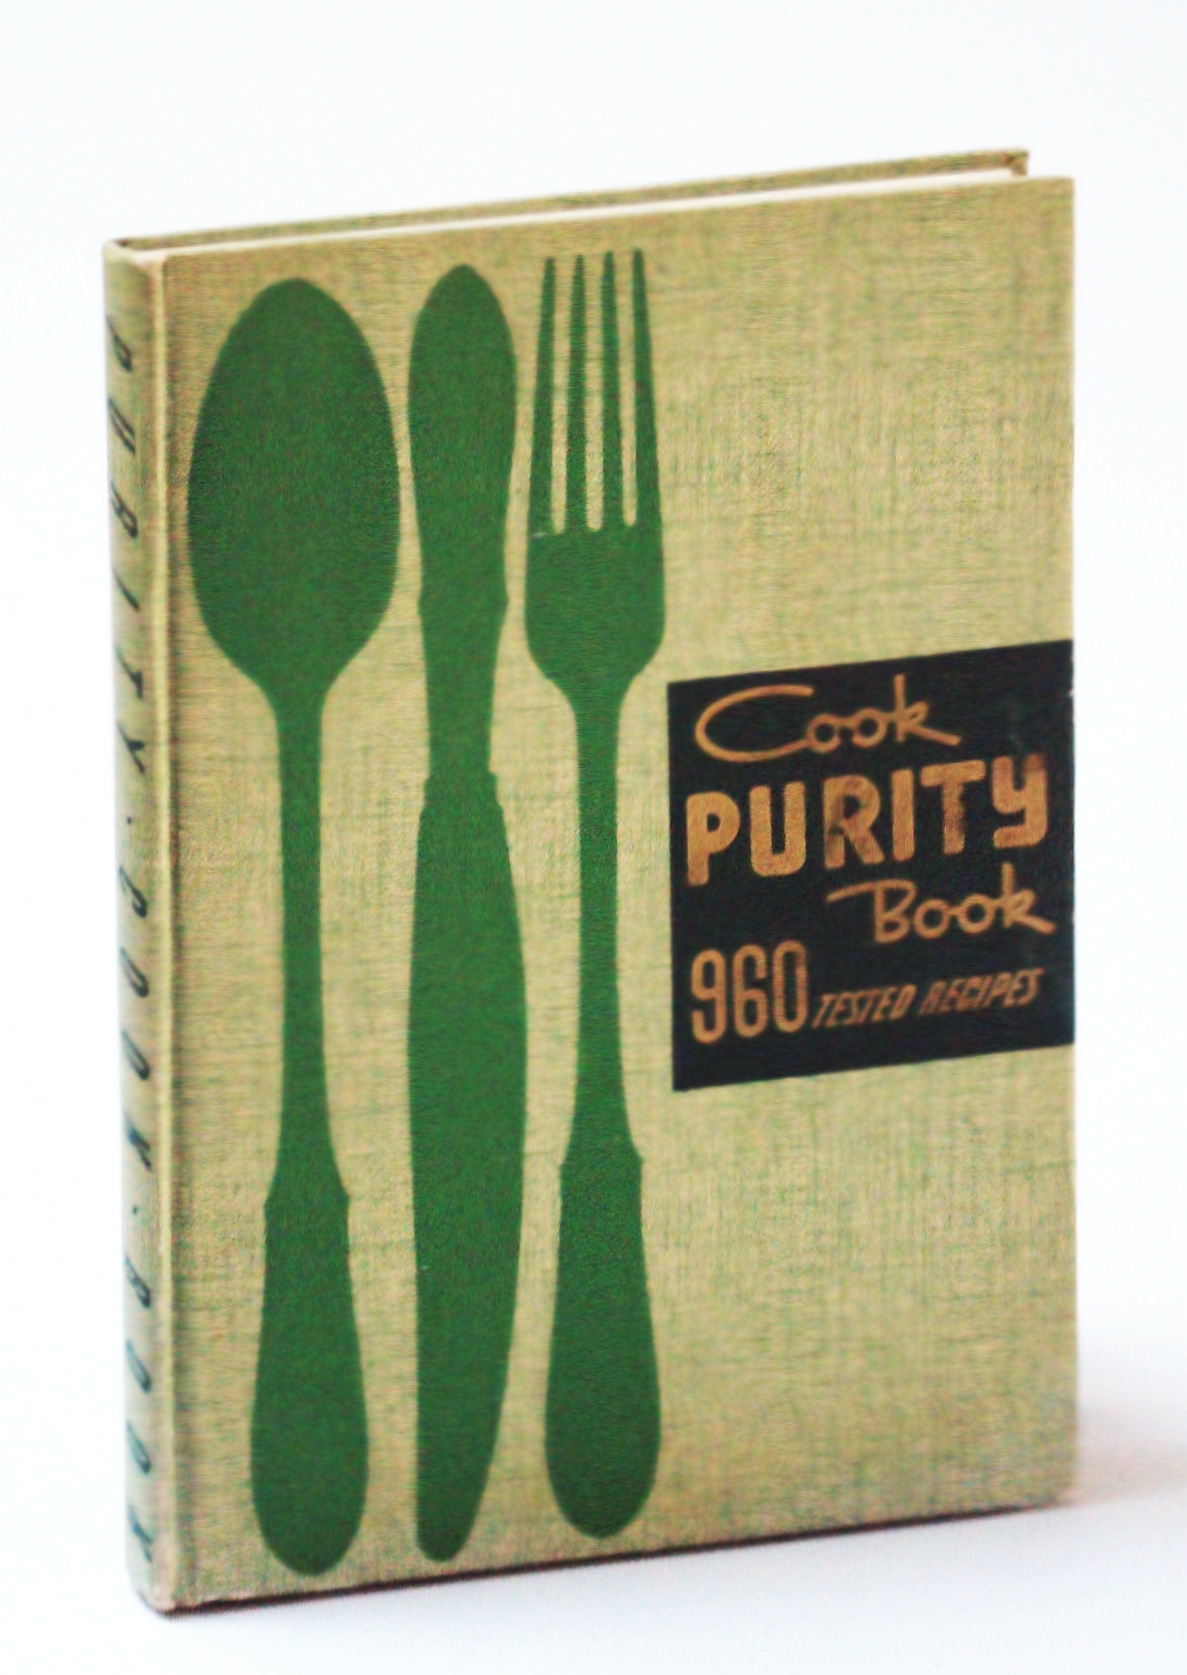 Purity Cook Book (Cookbook) - 960 Tested Recipes